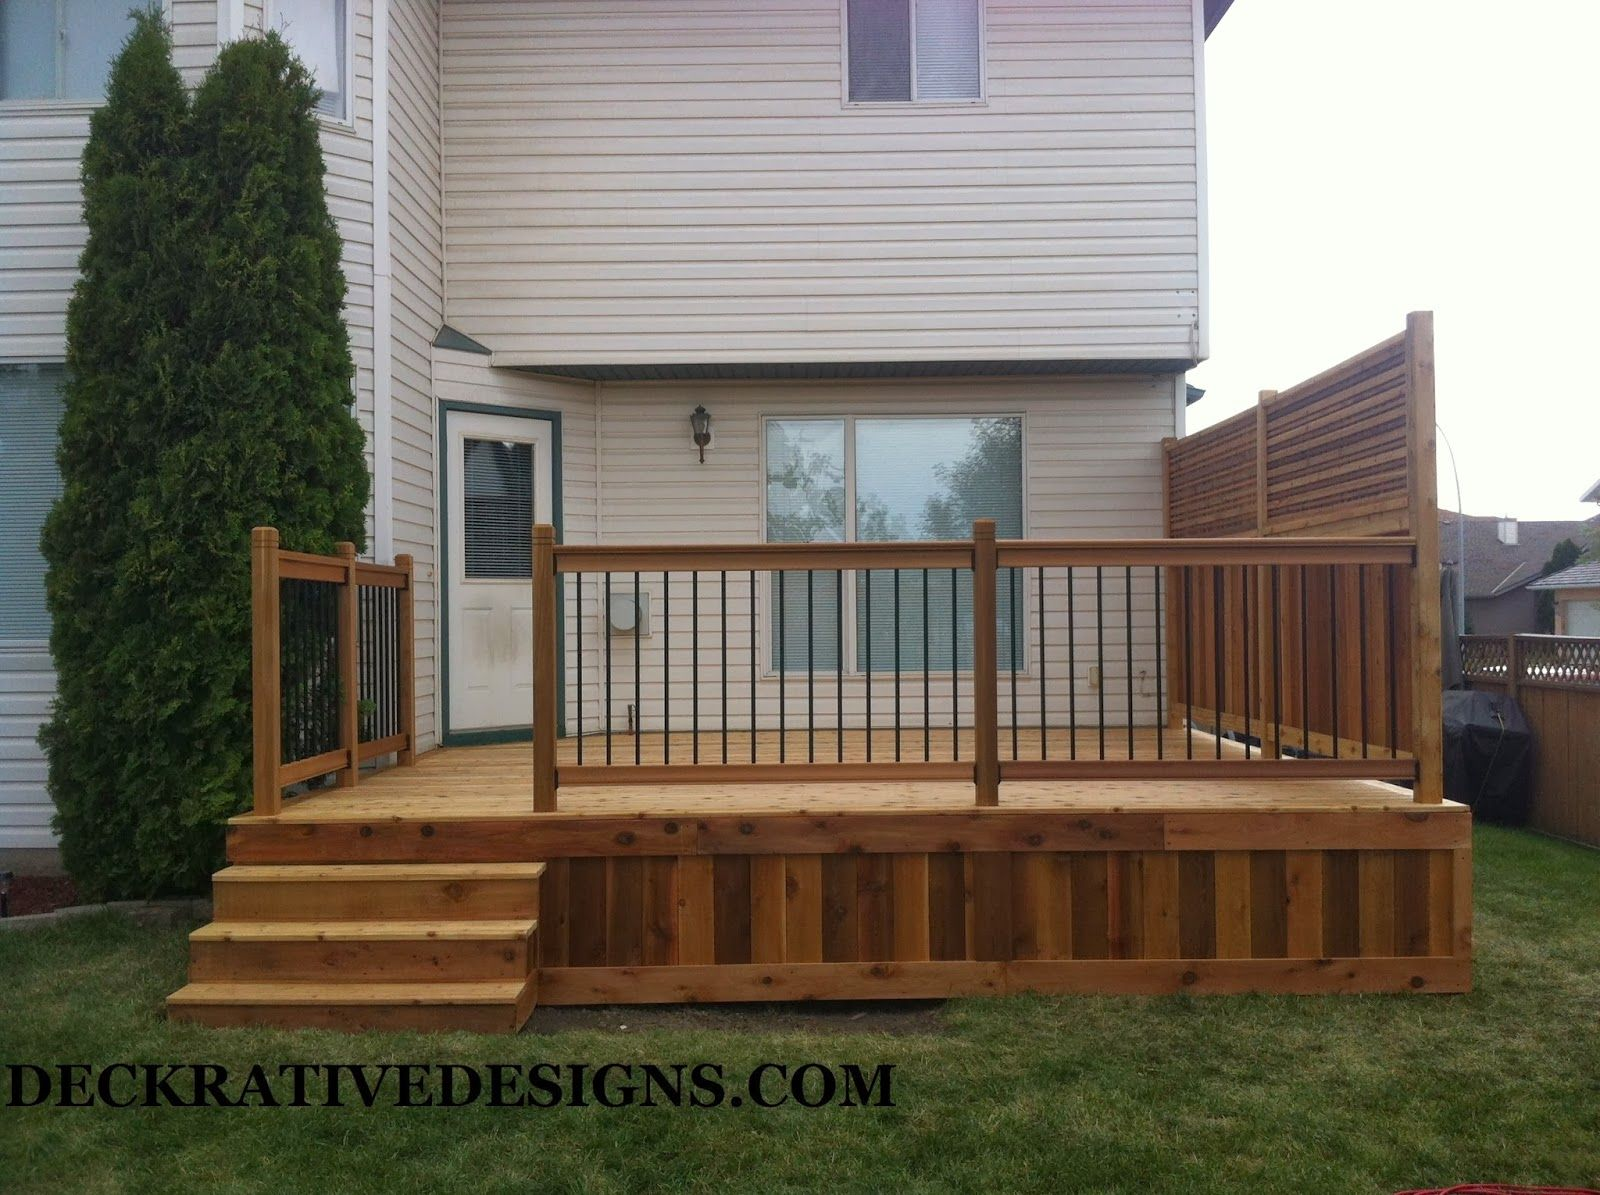 13 Most Stunning Deck Skirting Ideas To Try At Home